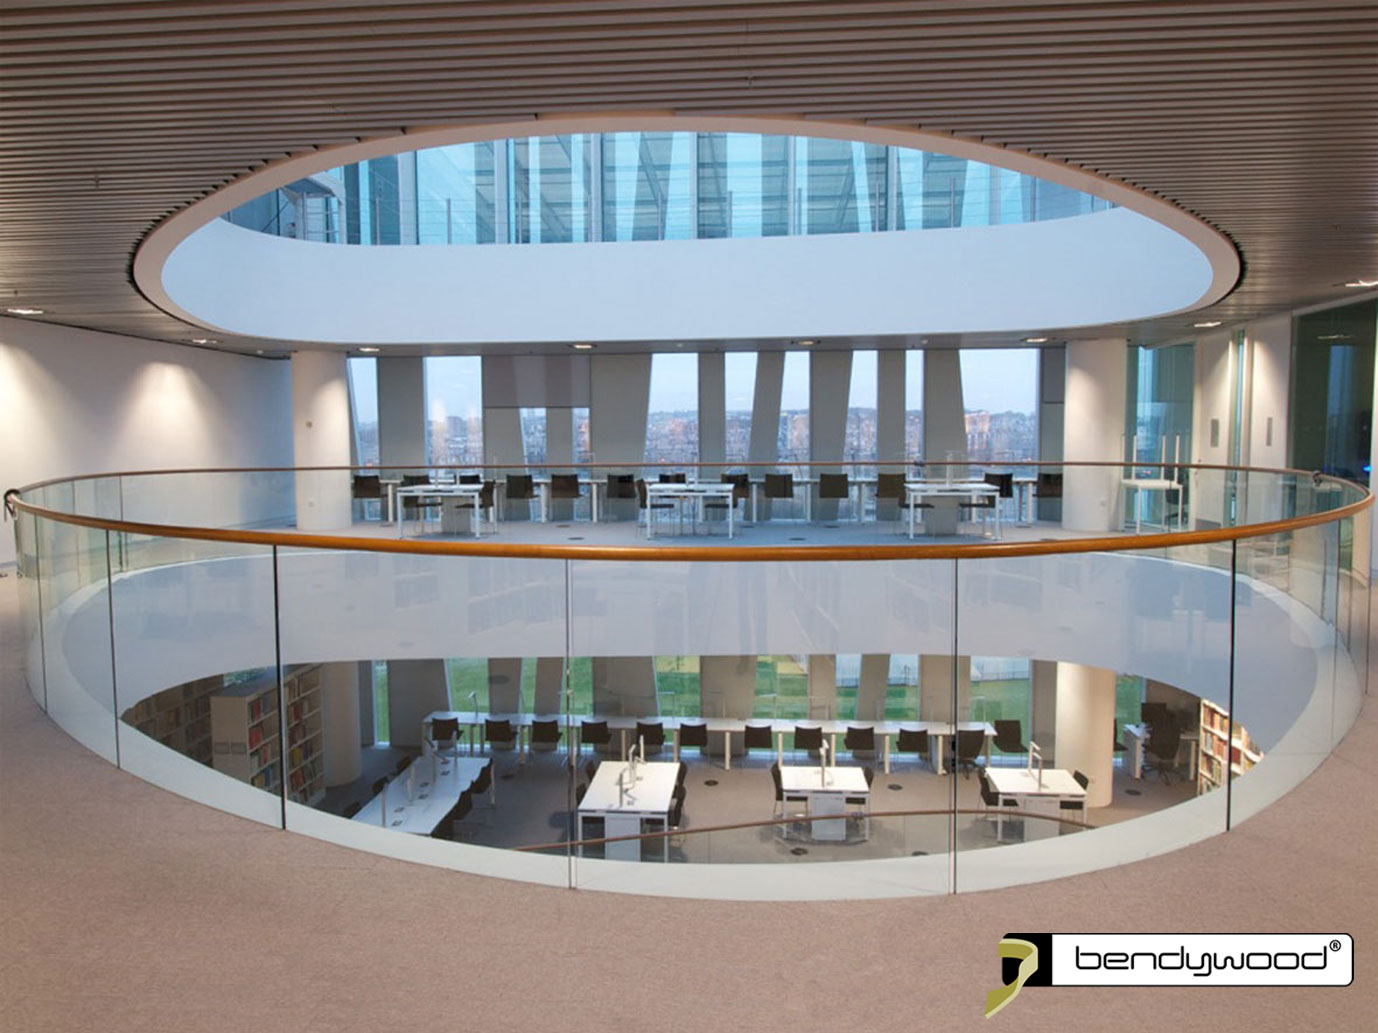 Round bending handrails in Bendywood®-oak, bent and fitted directly onto a glass balustrade